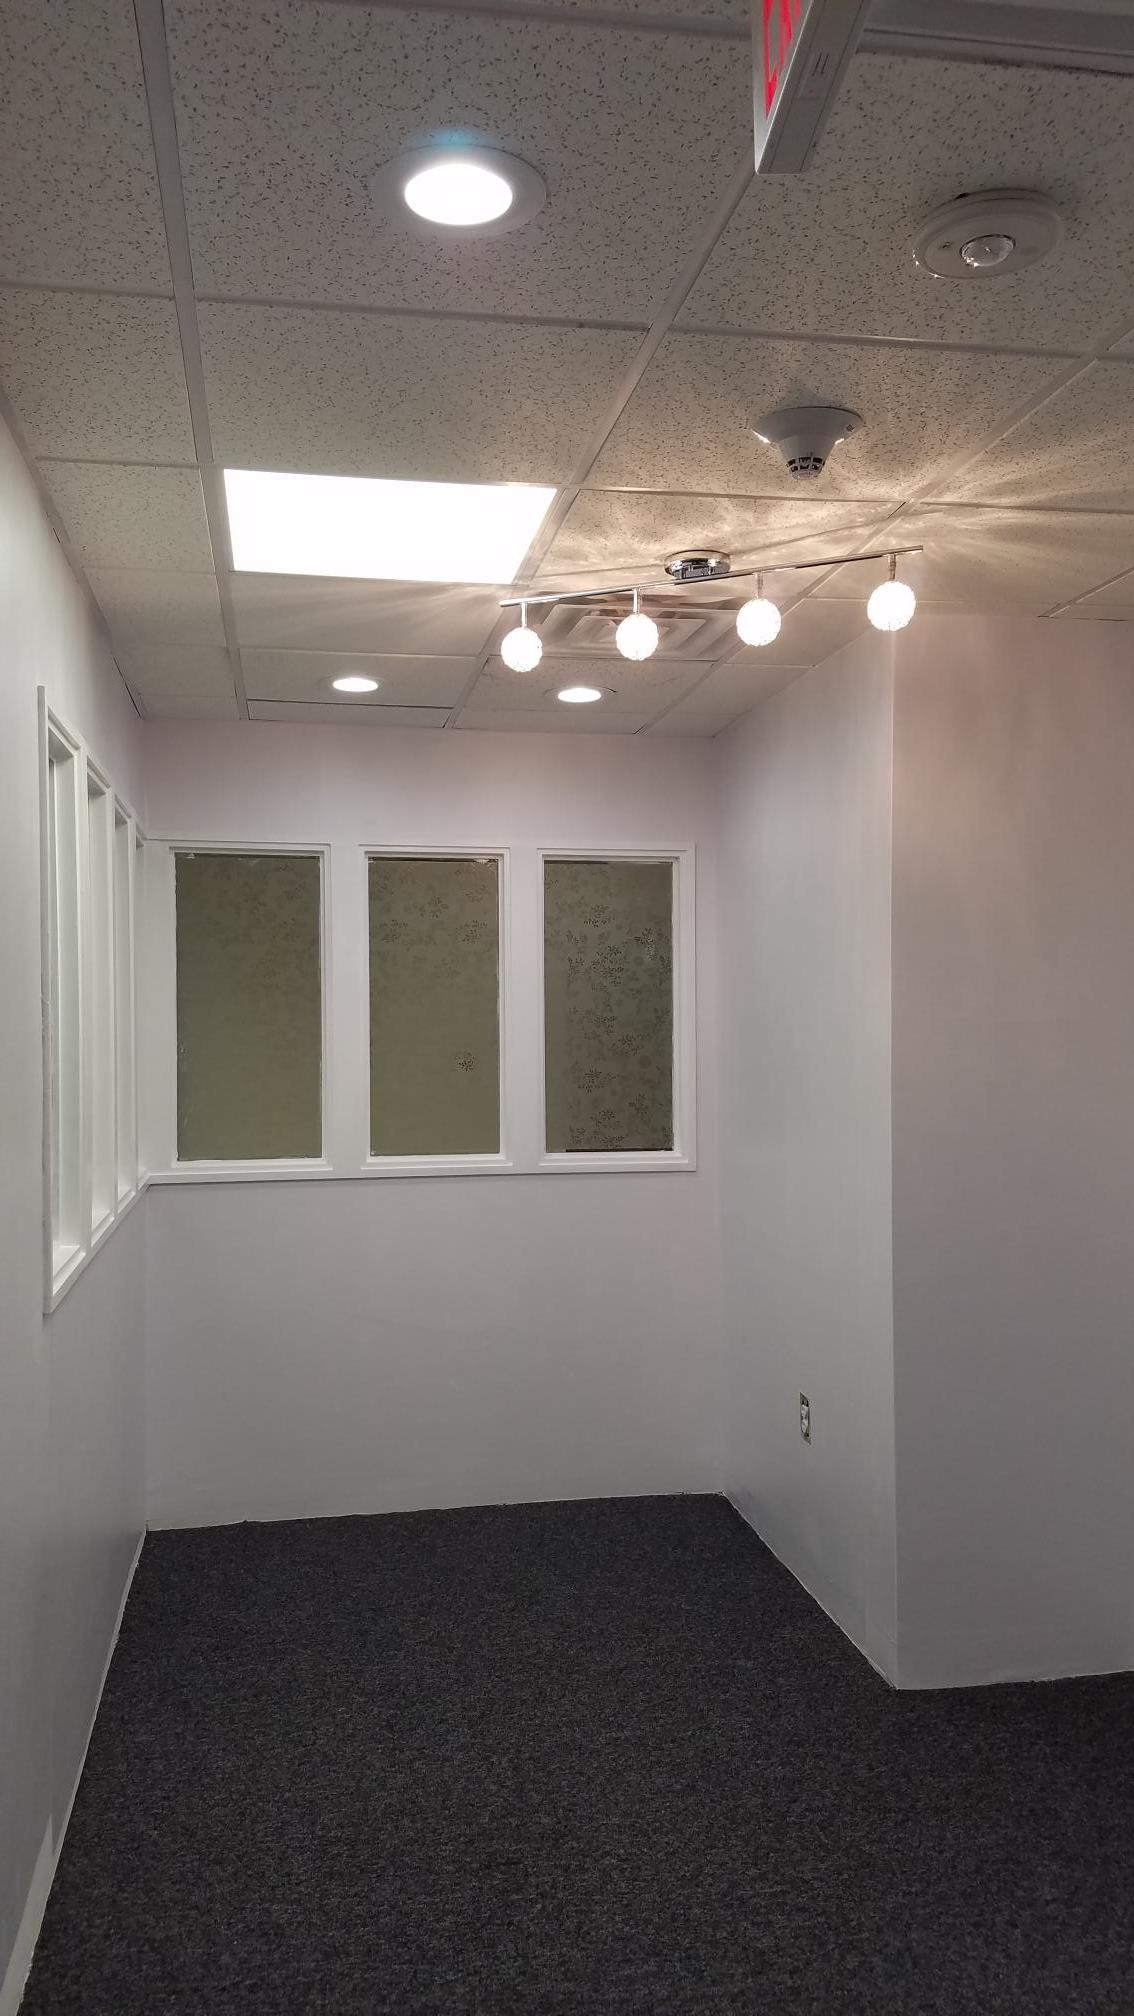 Medical Office Suite in Dallas - Suite 225A - Image 17 of 22